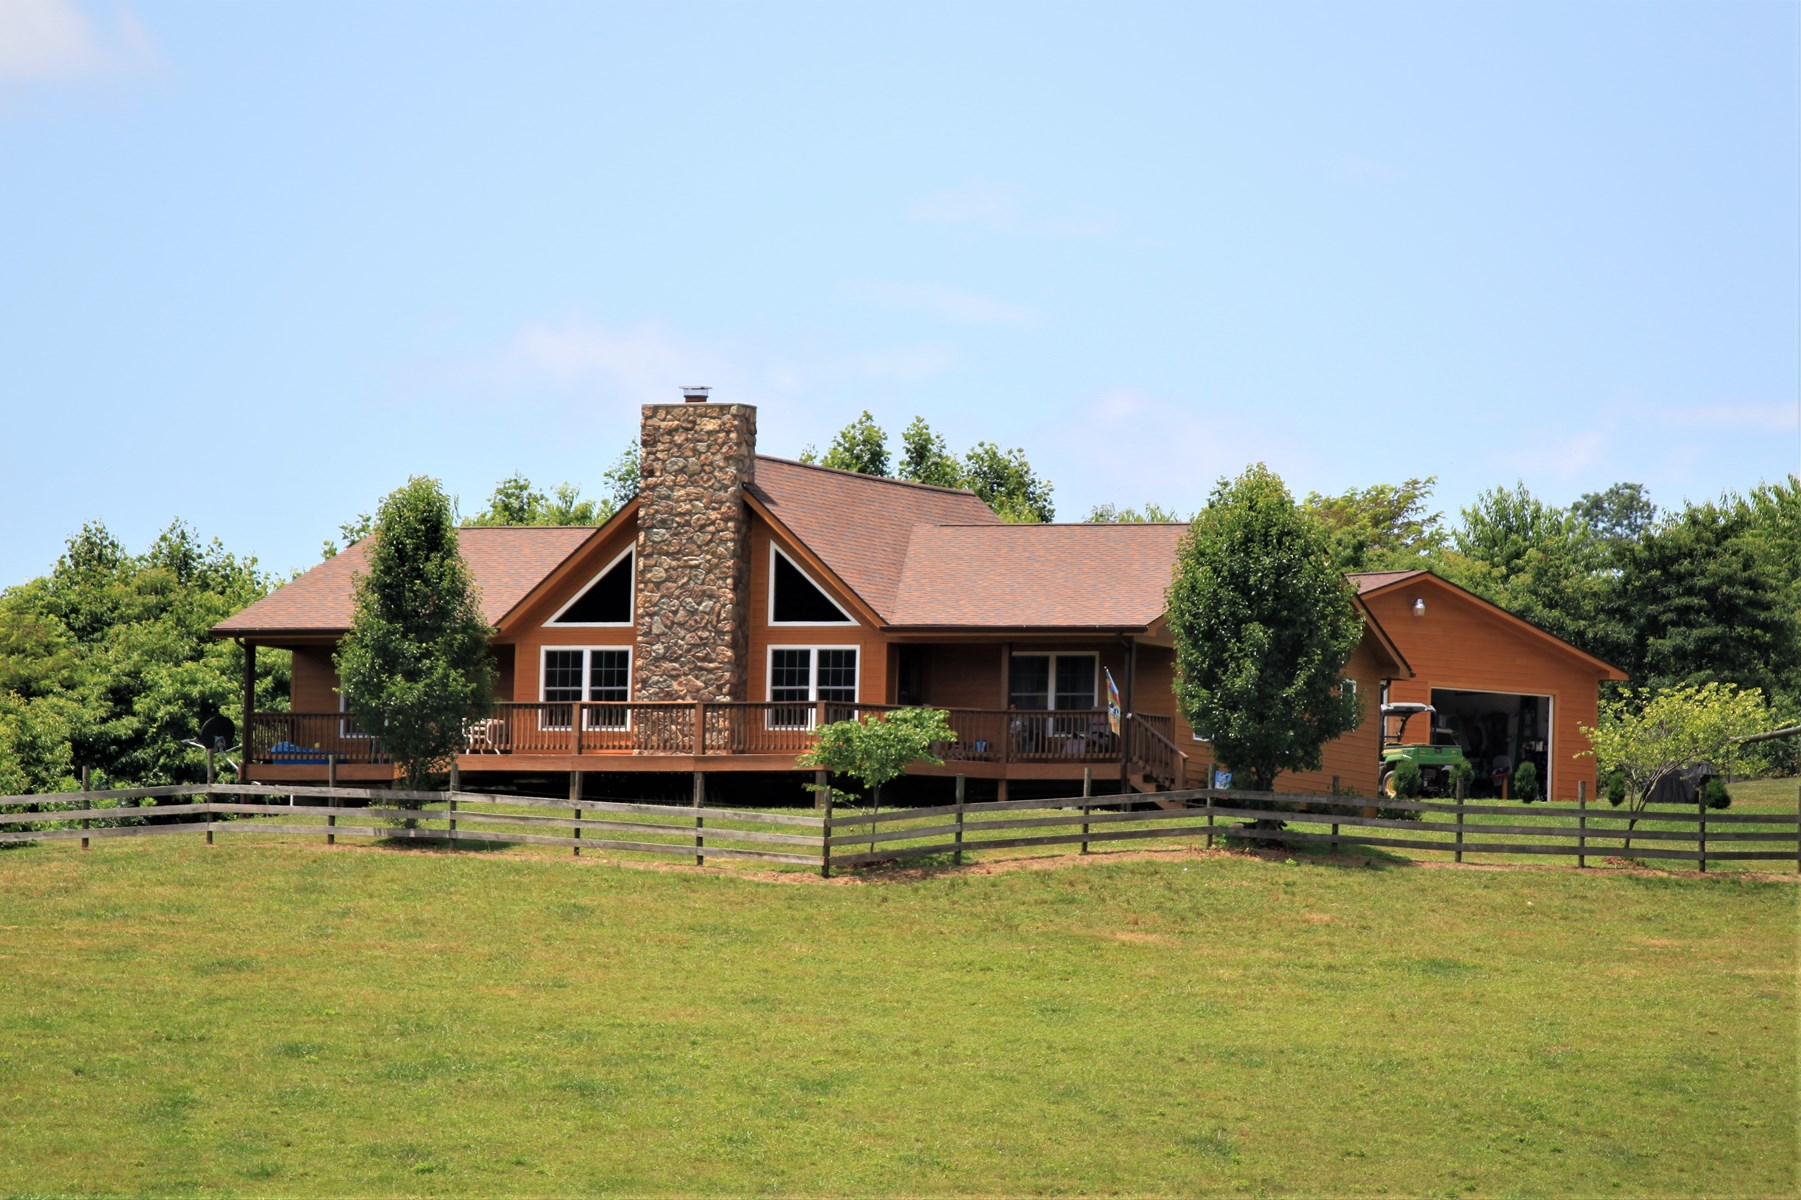 Country Farm Home for Sale in Castlewood VA!